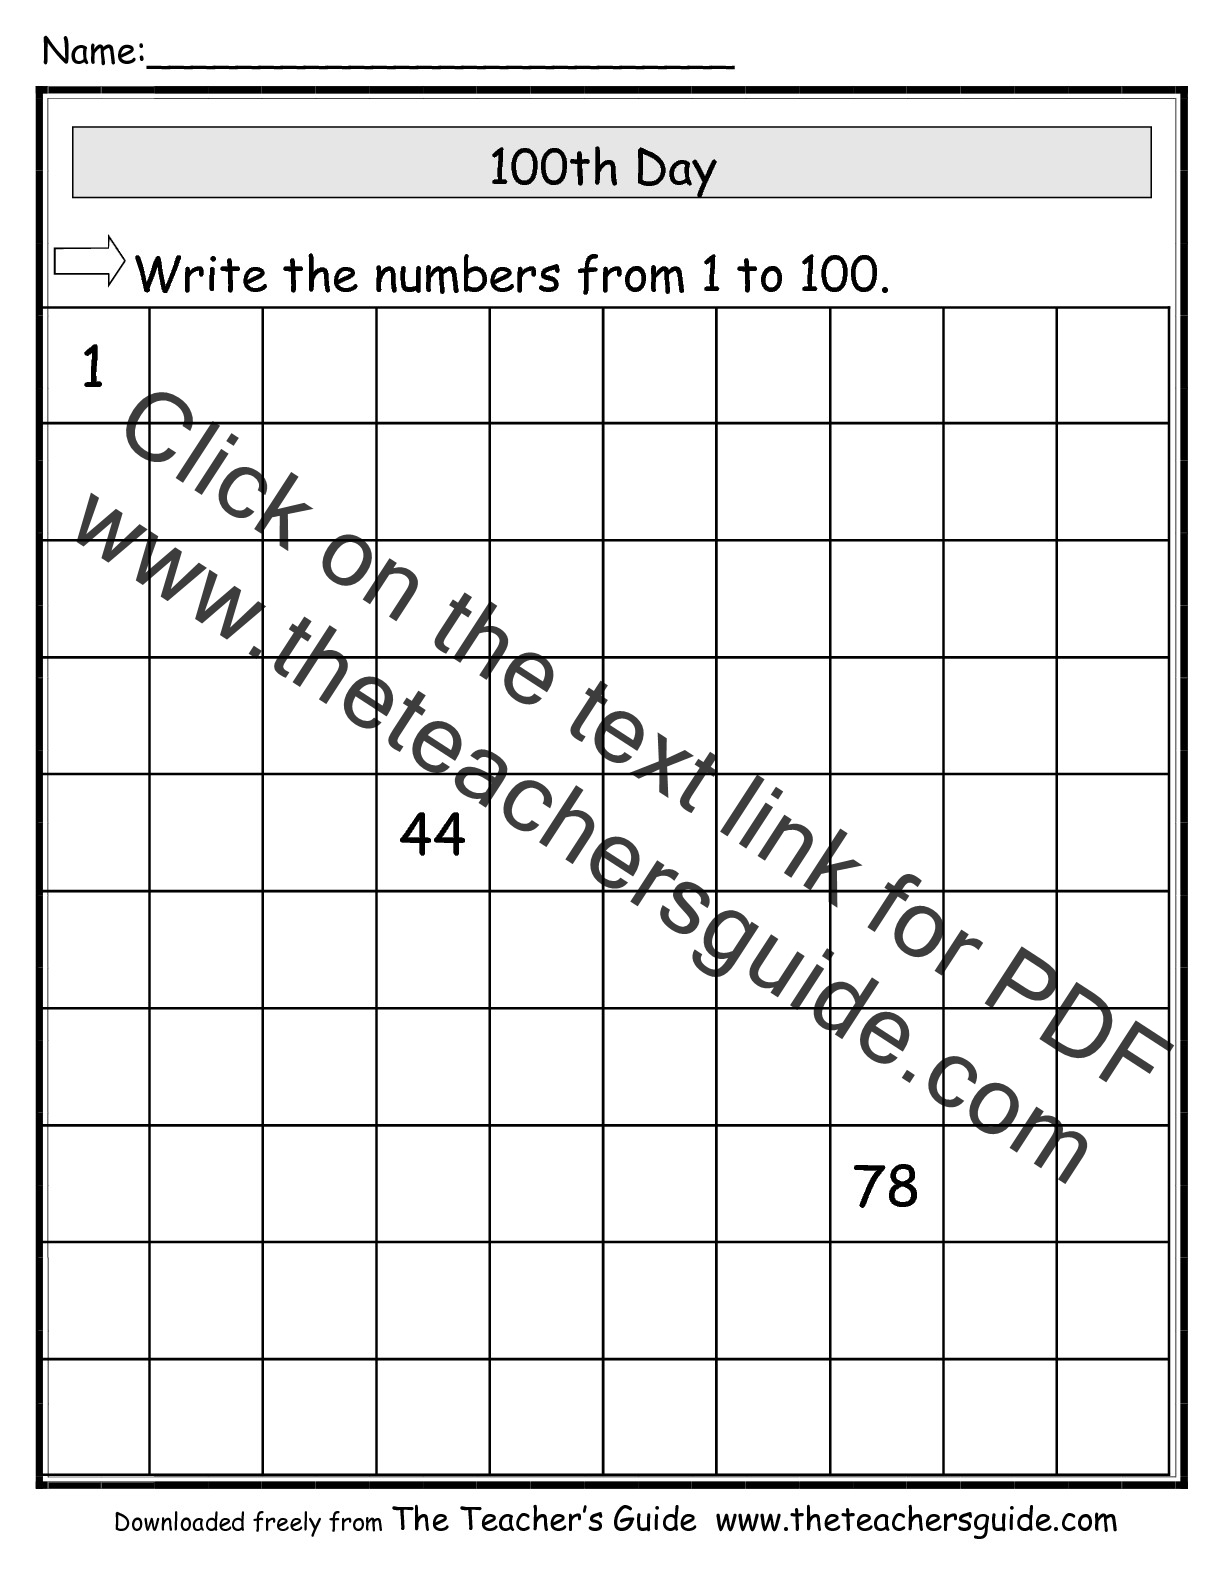 Missing Number Worksheet New 827 Missing Number Worksheet To 100